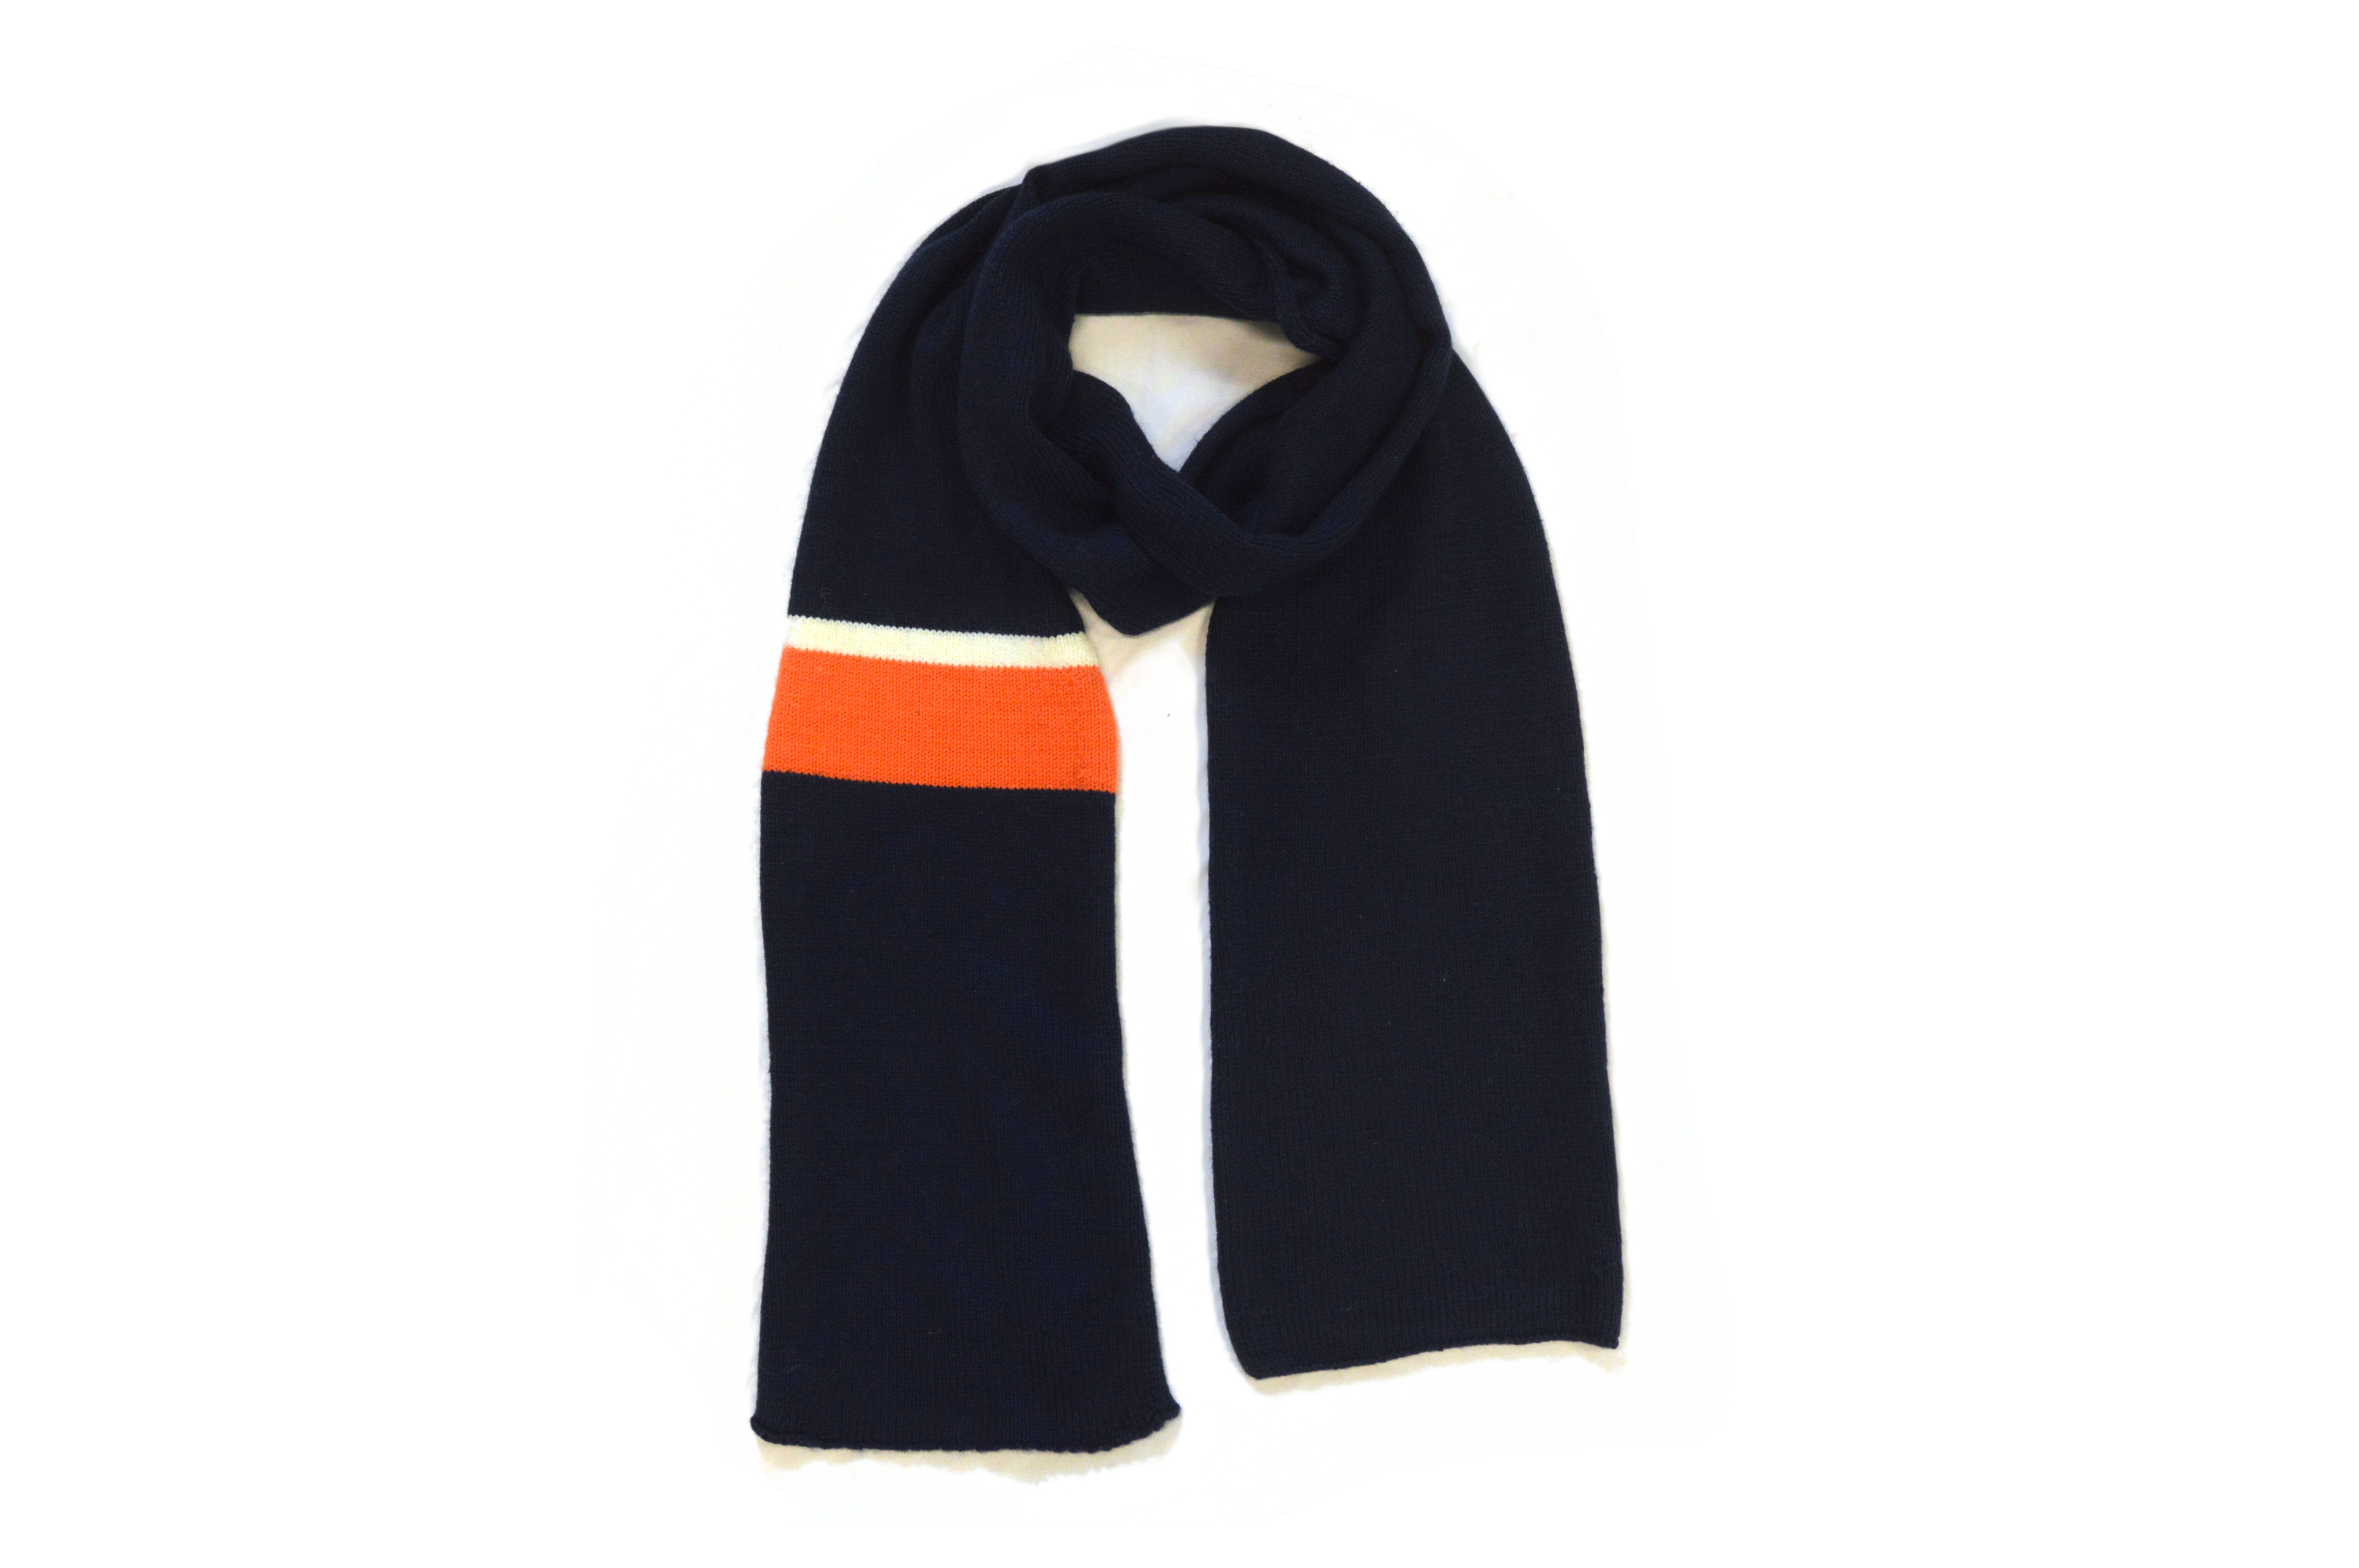 Classic Scarf on White Background